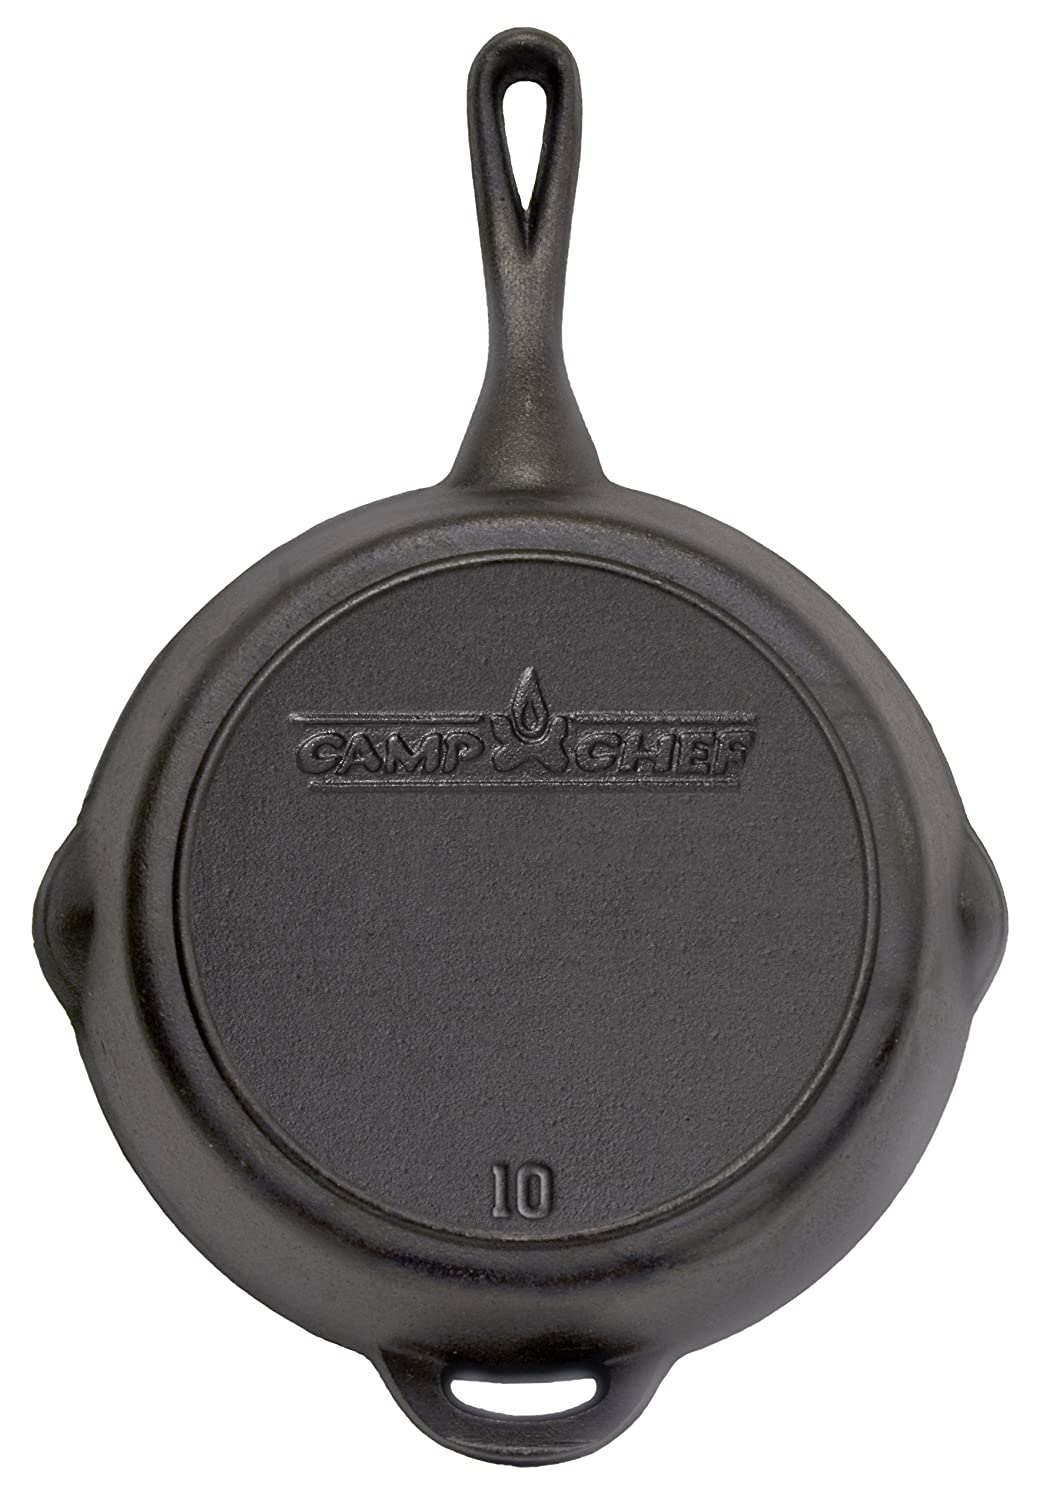 Camp Chef 10 Seasoned Cast Iron Skillet